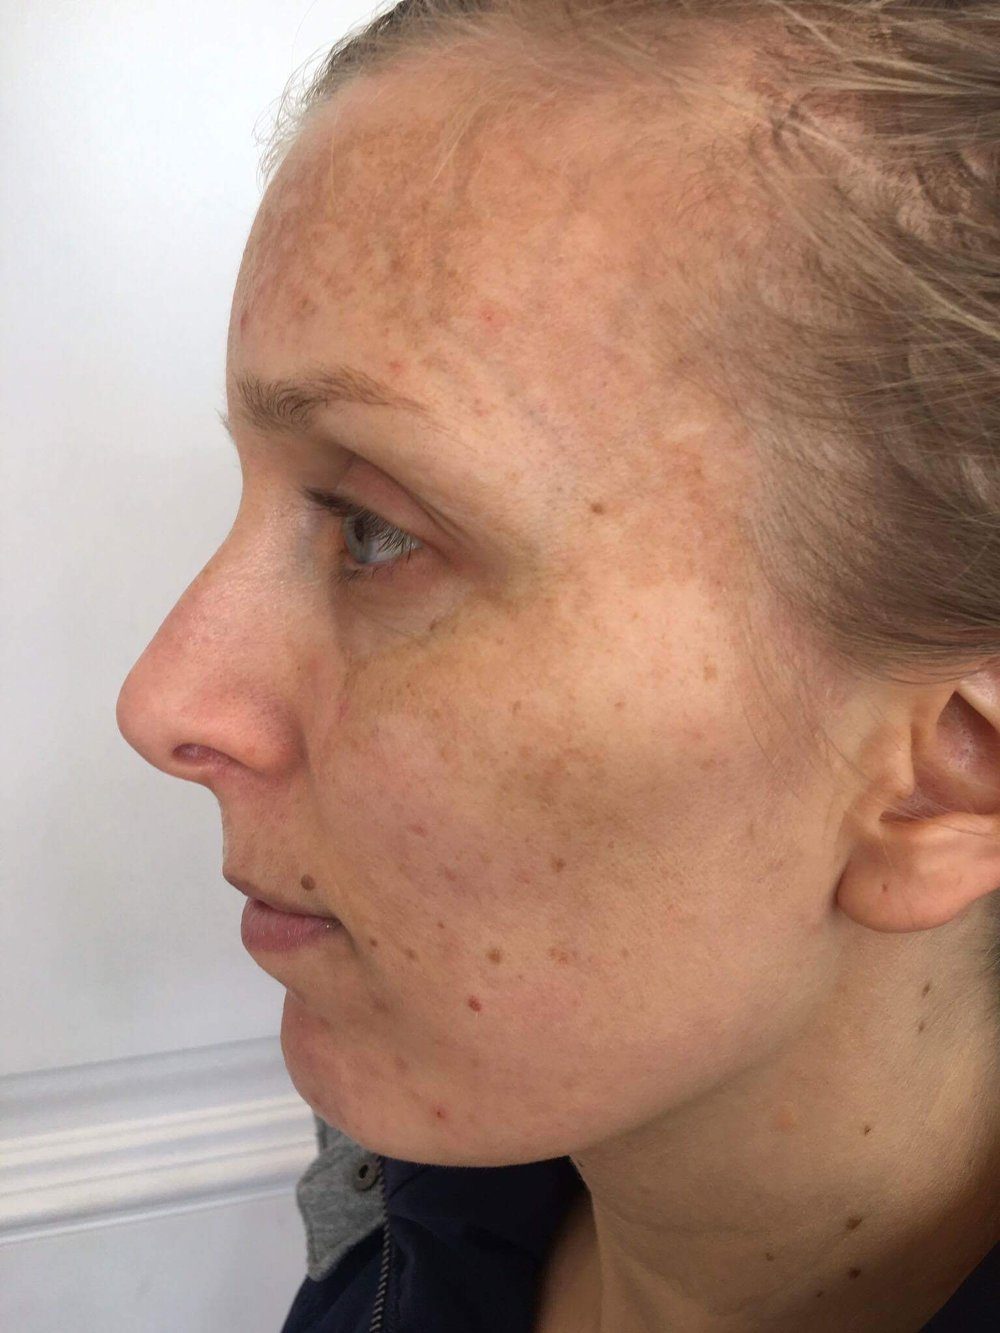 melasma cosmelan dermamelan depigmentation skin treatment